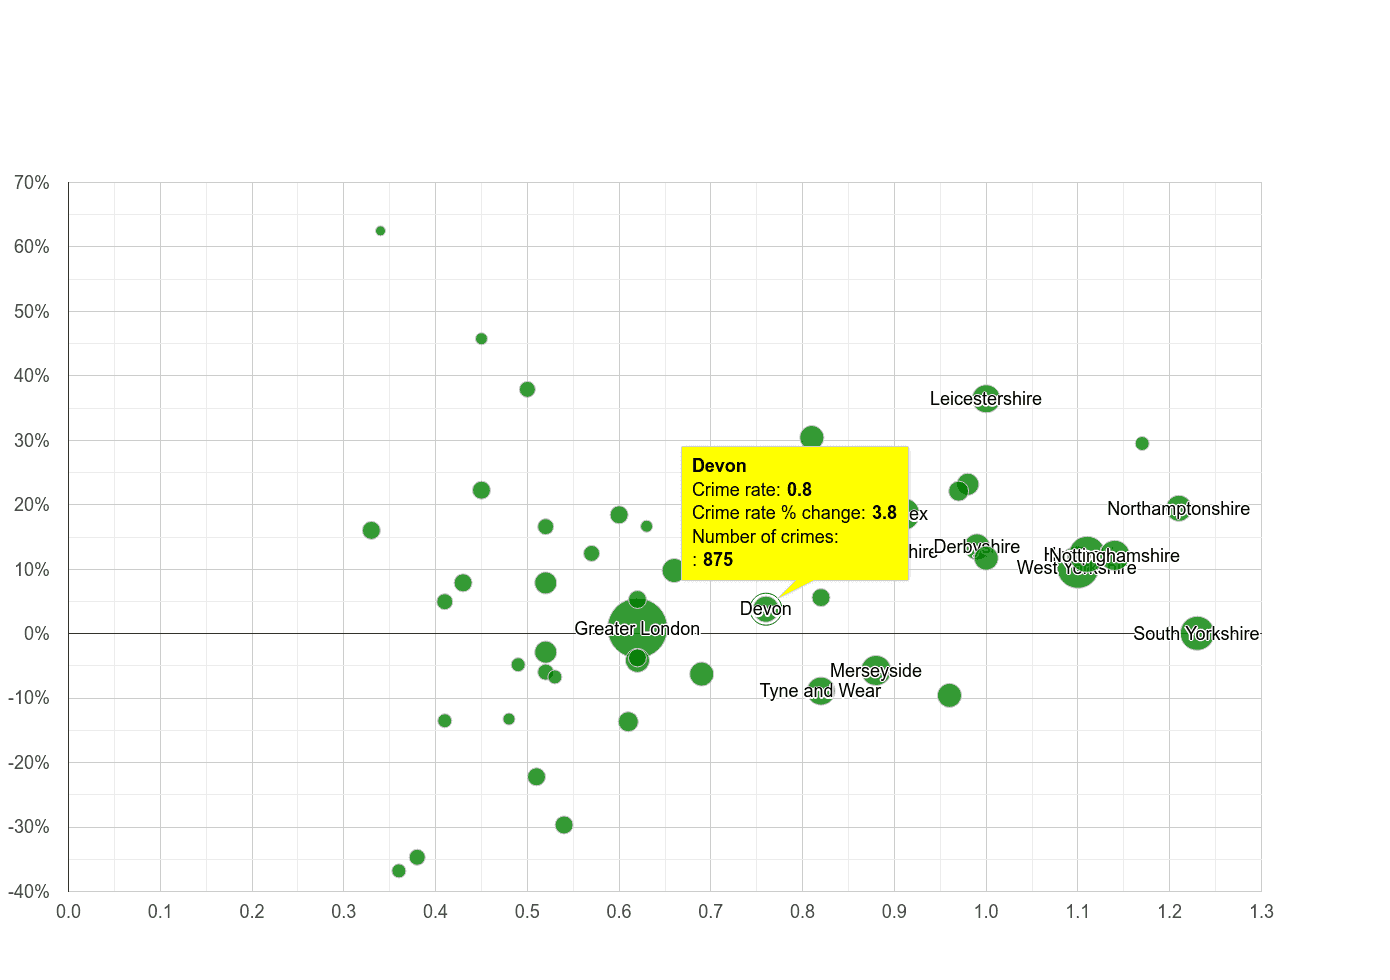 Devon possession of weapons crime rate compared to other counties